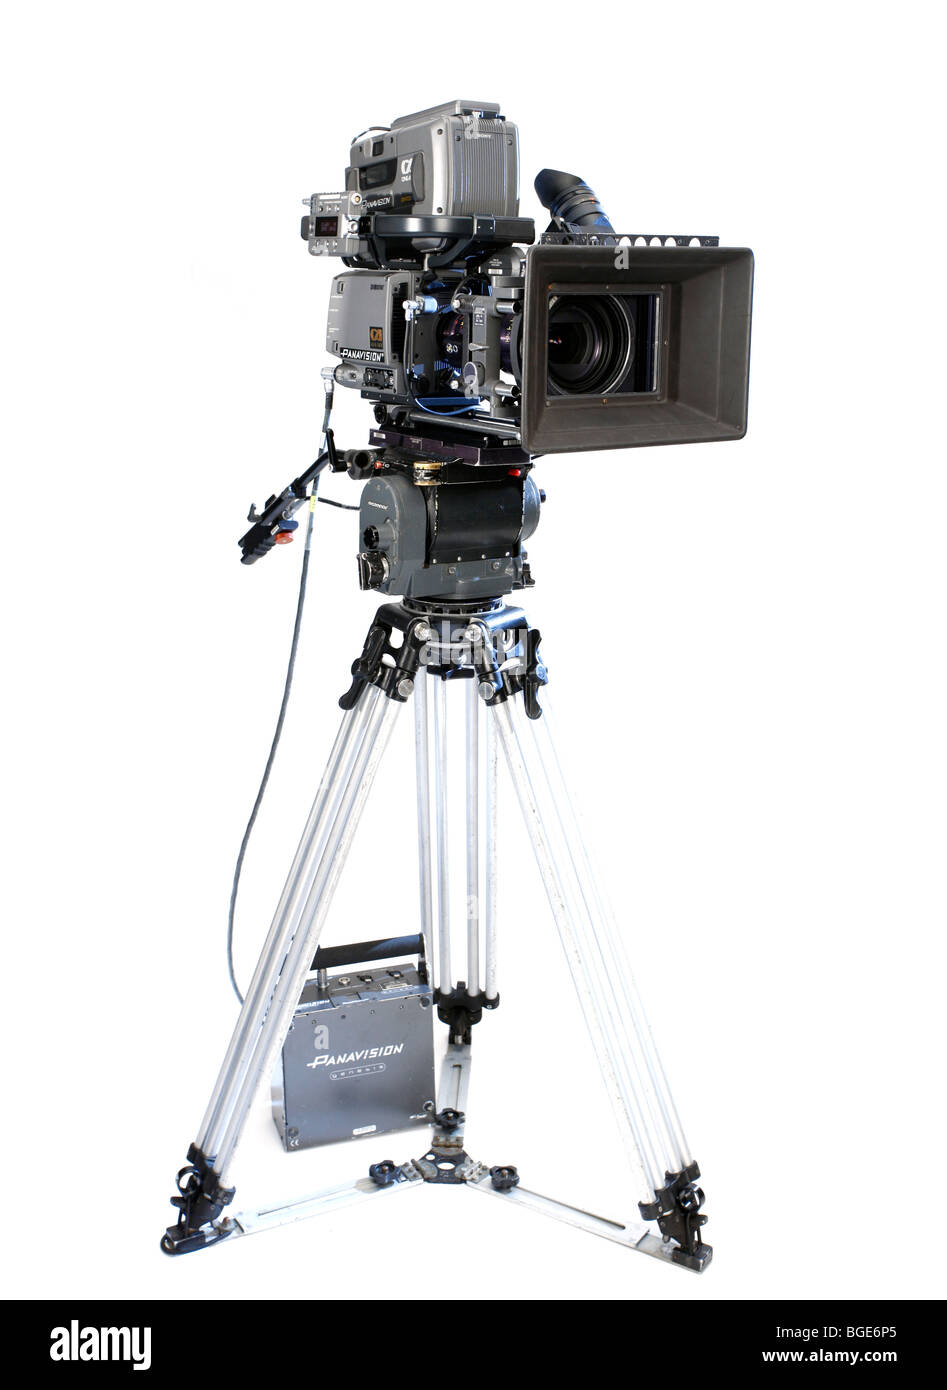 Studio Product Shot Of A Panavision Genesis Modern Digital Movie Camera On White Background Full Length With Head And Tripod